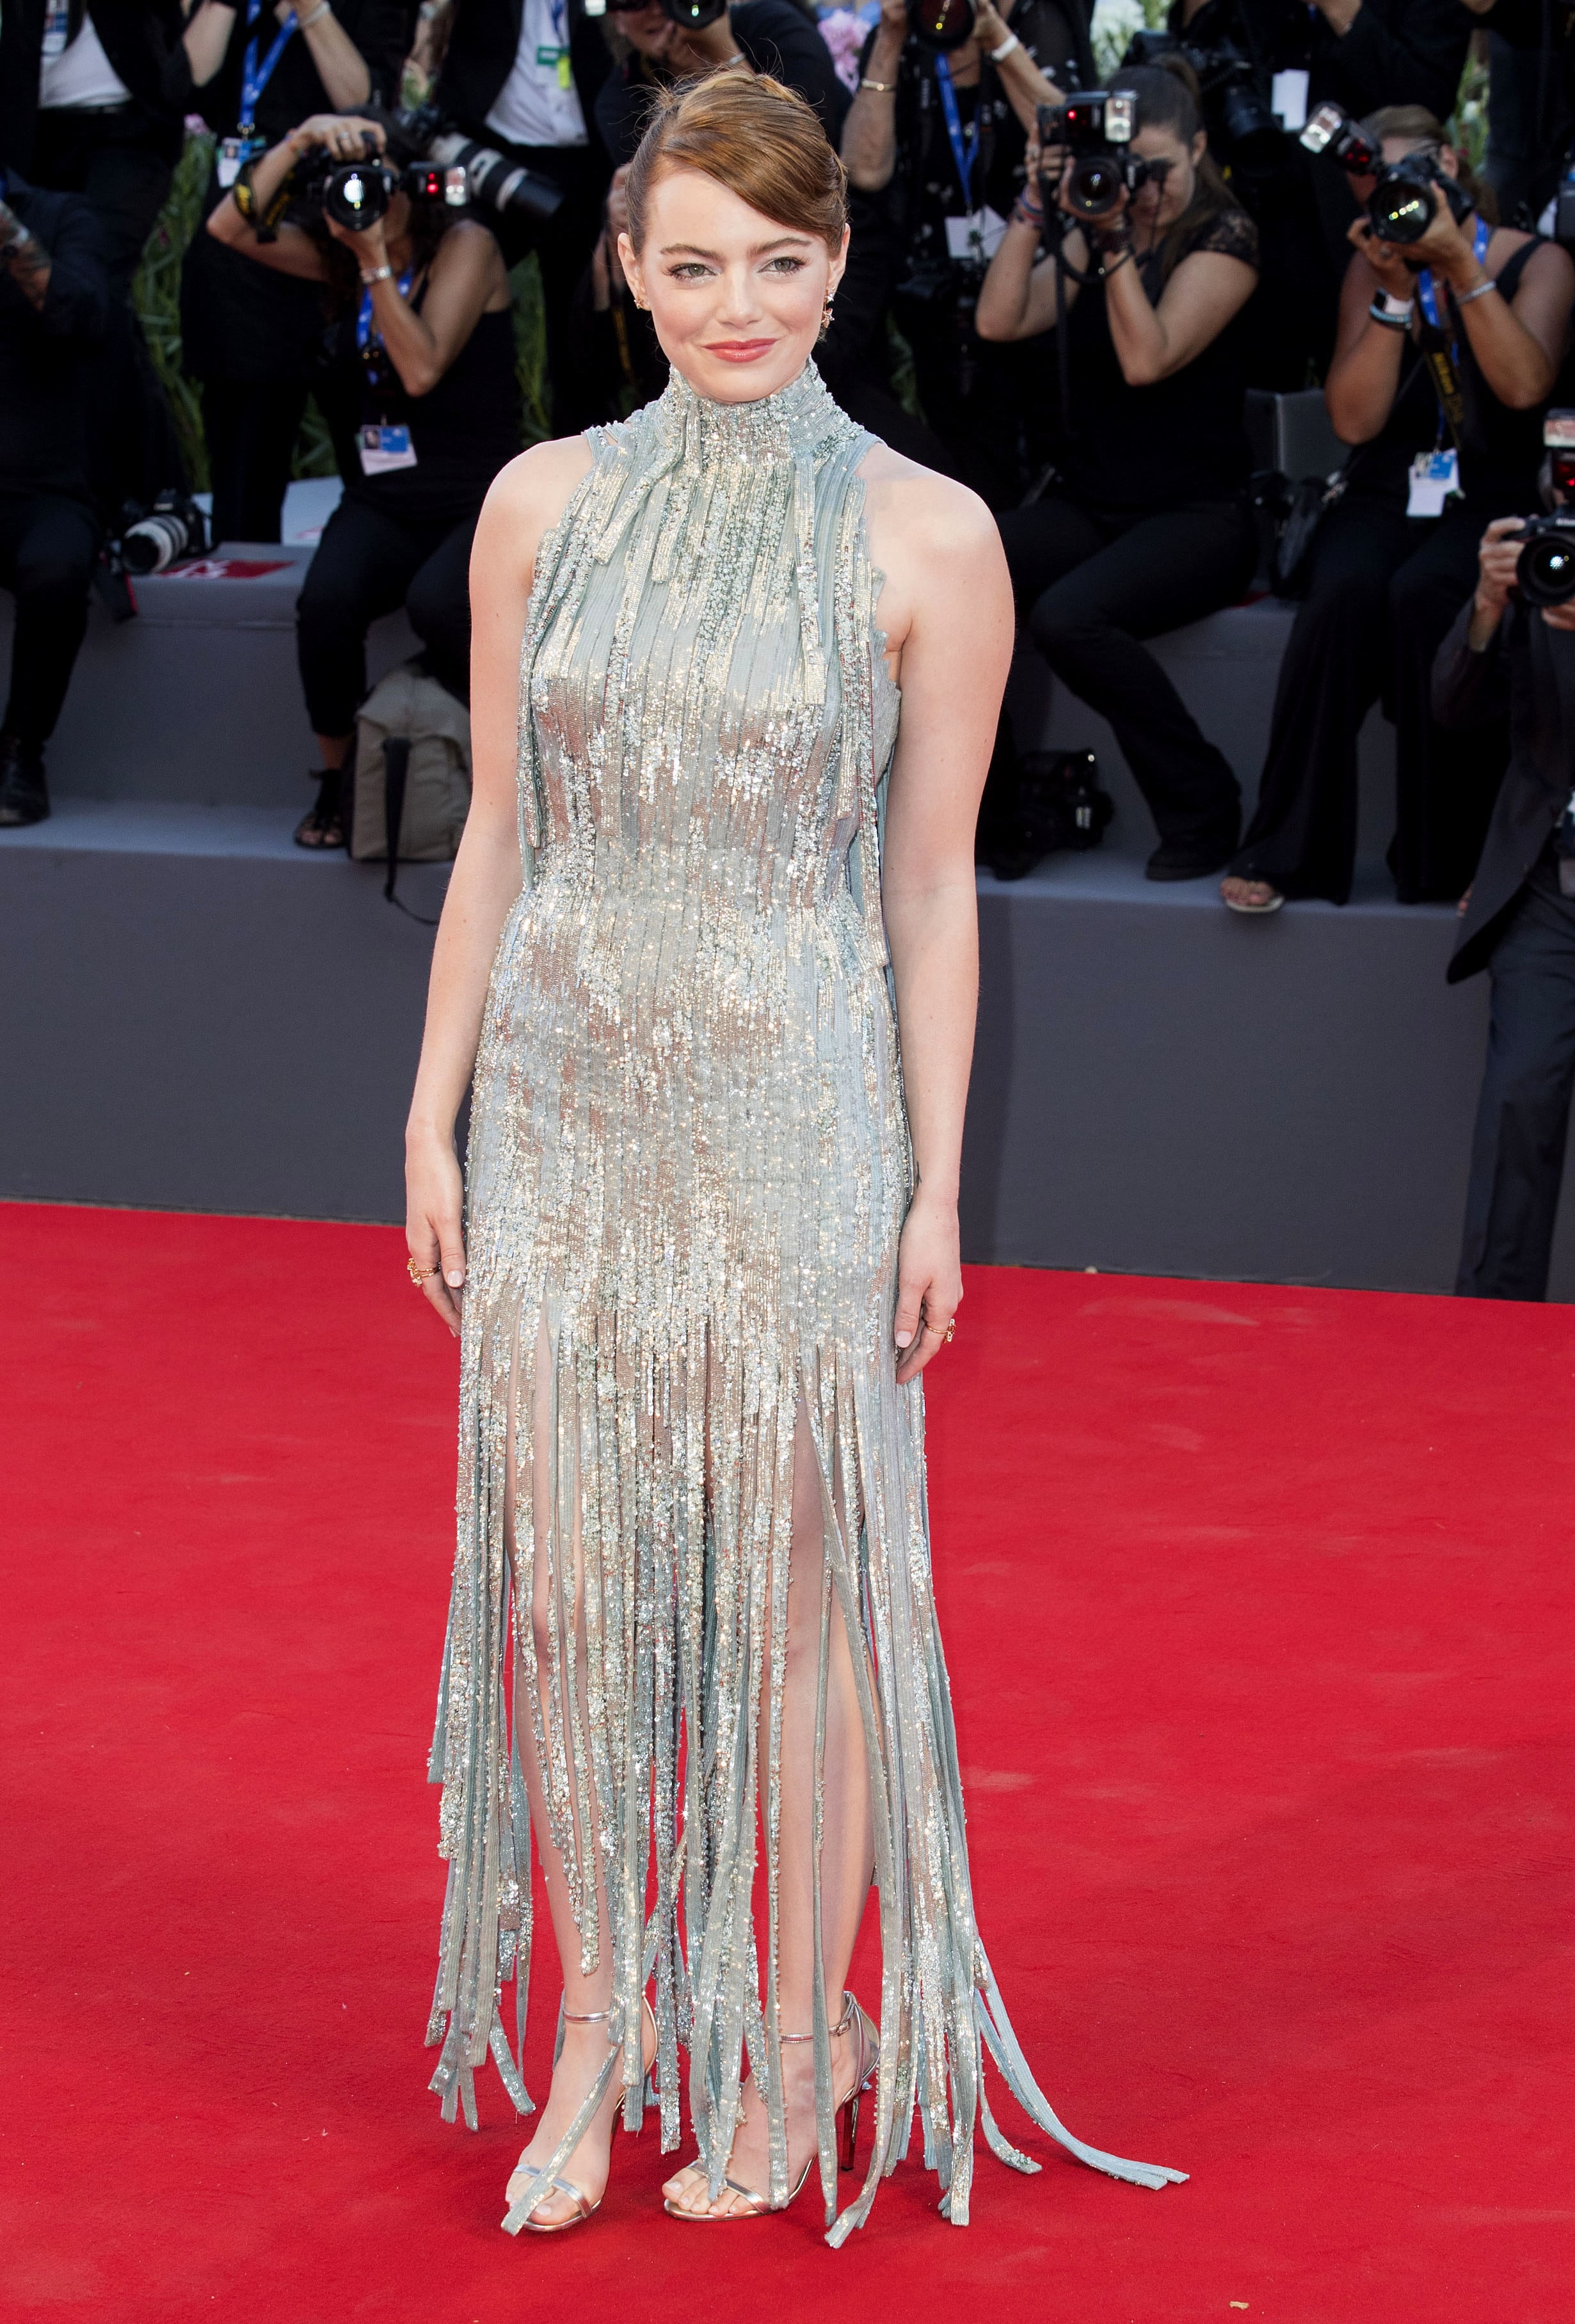 Holiday inspiration best silver dresses in red carpet history jetss - Silver red carpet dresses ...